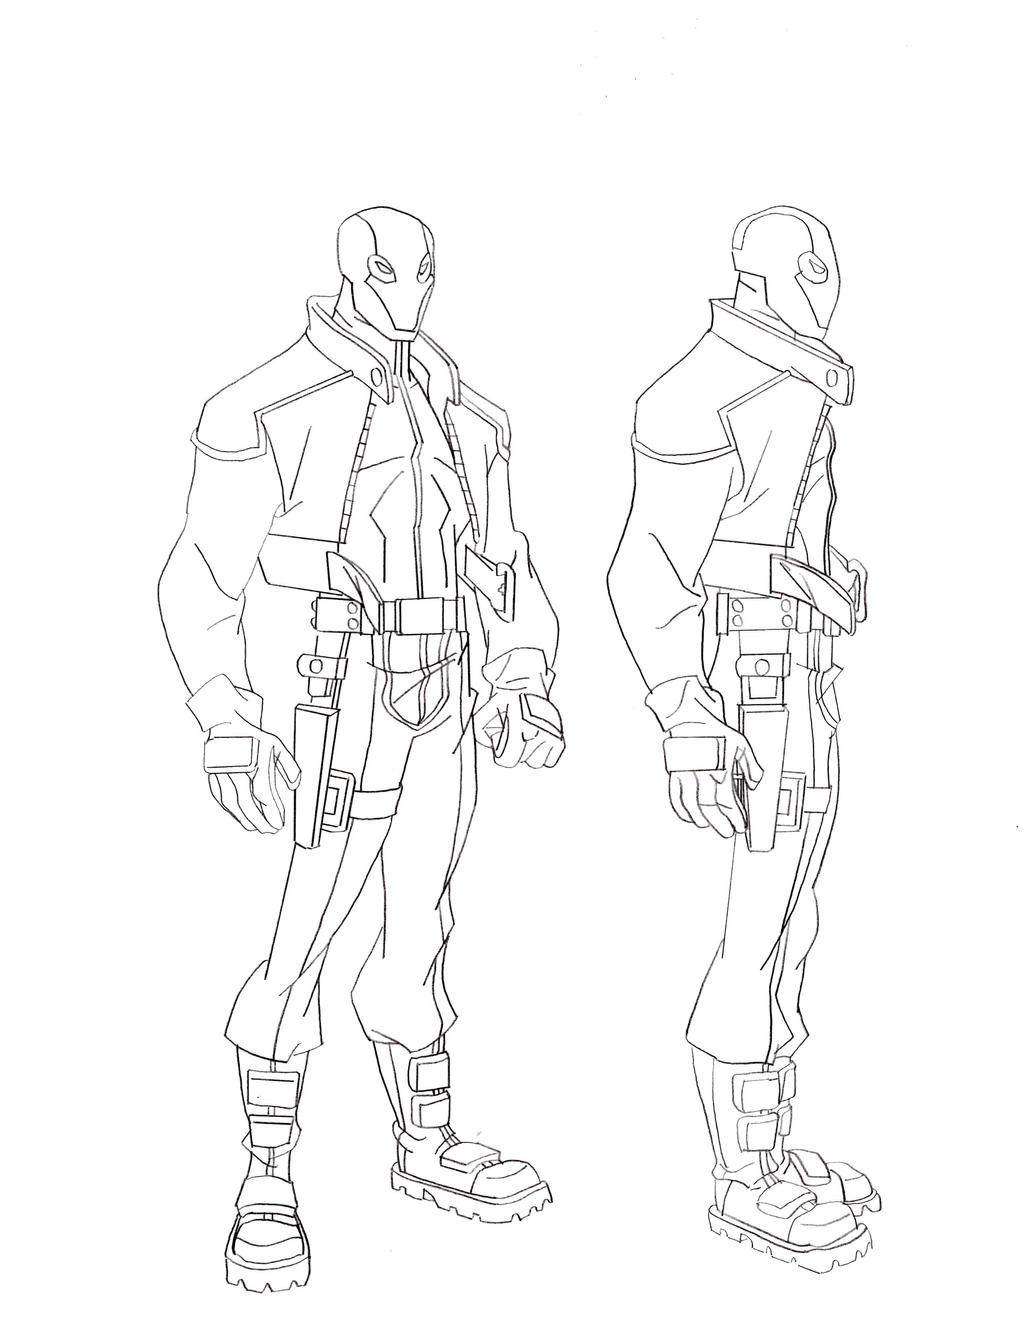 jason todd coloring pages - photo#27